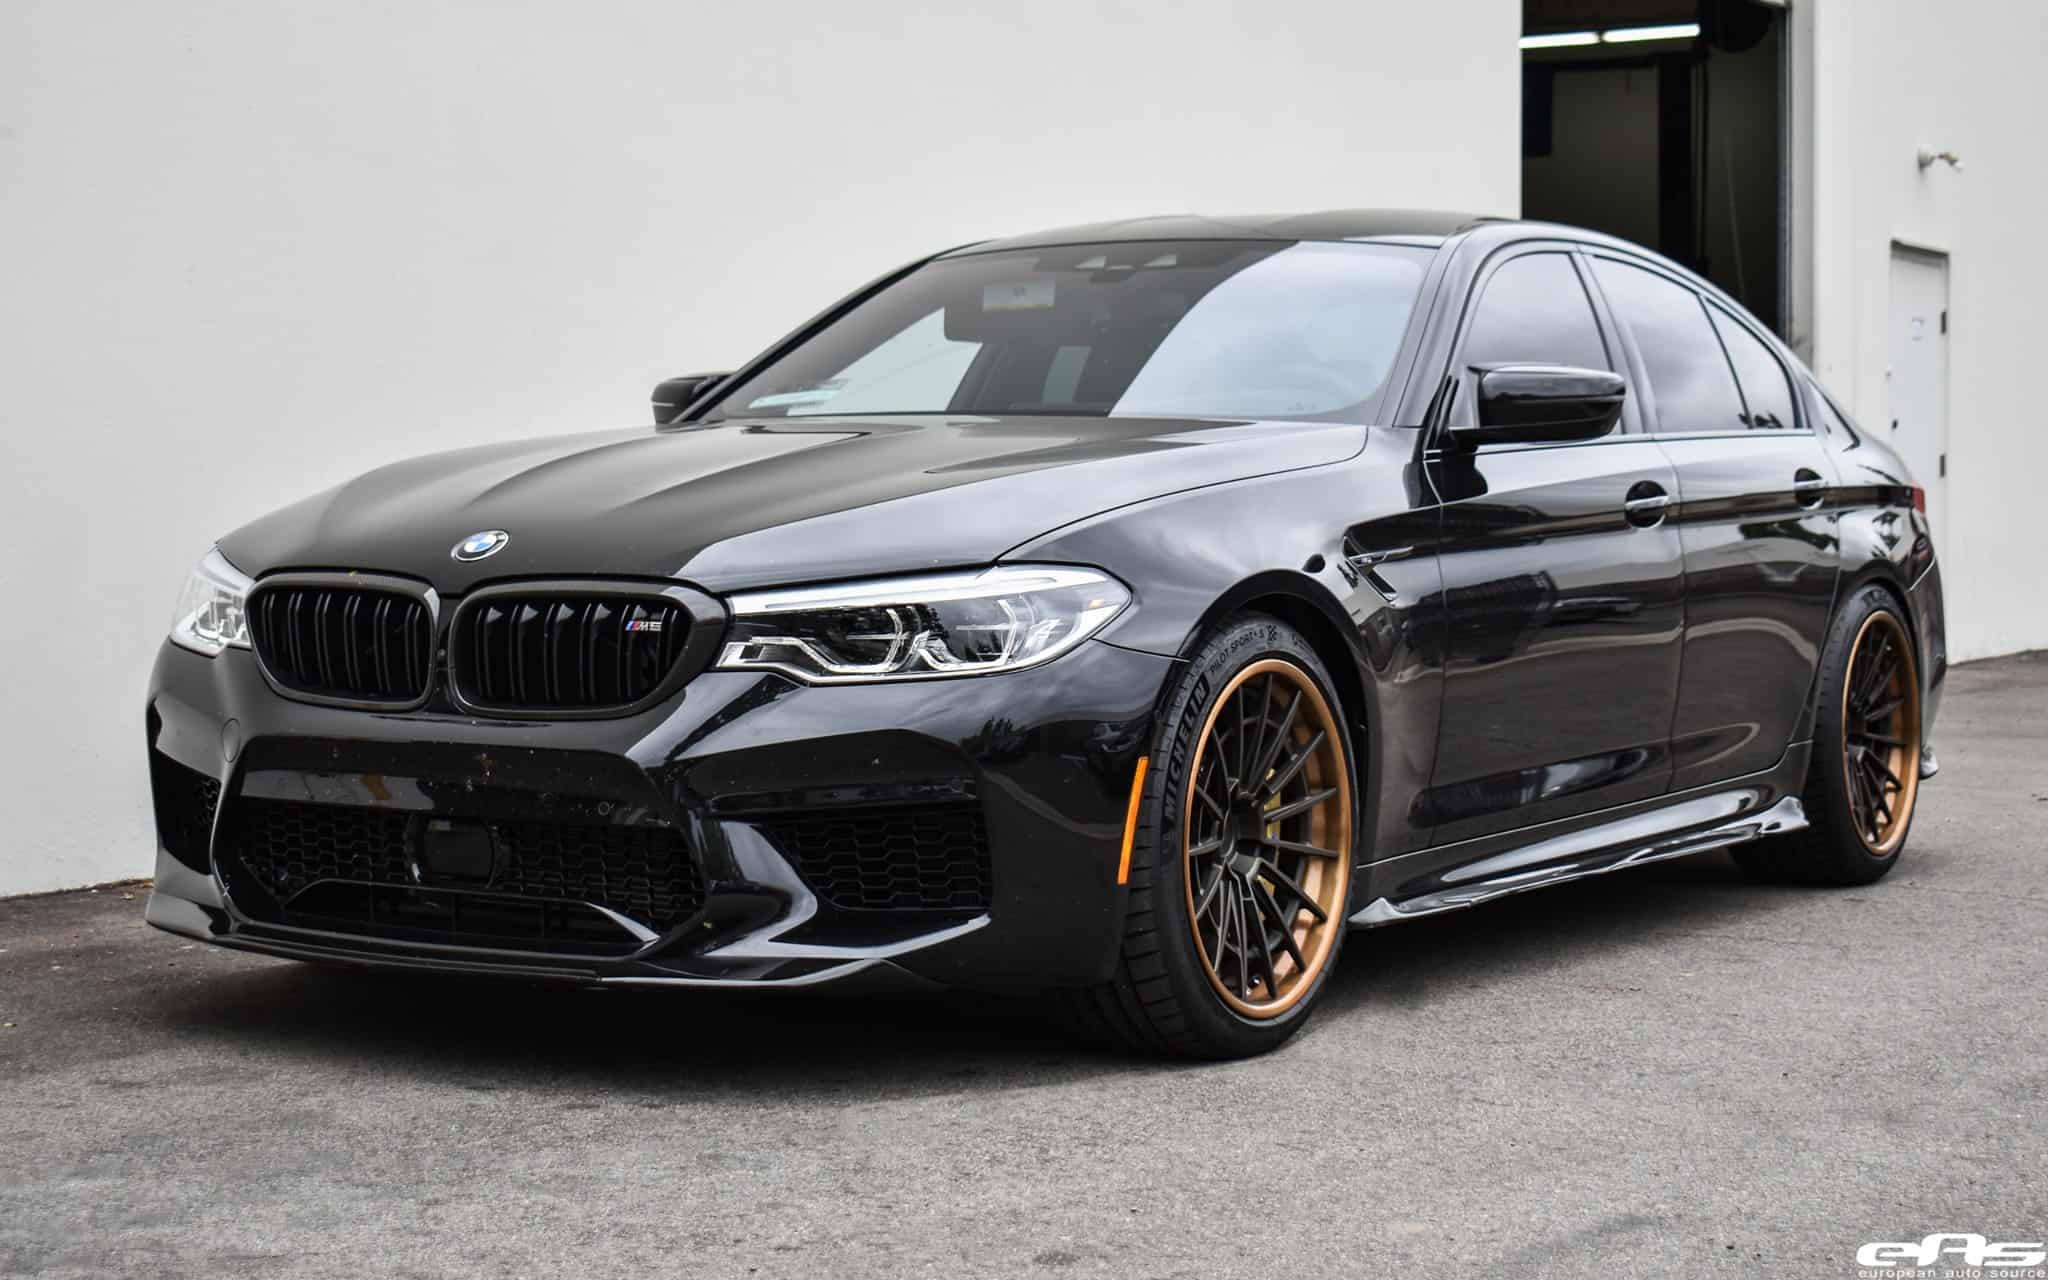 2020 Black Sapphire Bmw F90 M5 Competition DINMANN Aero Kit